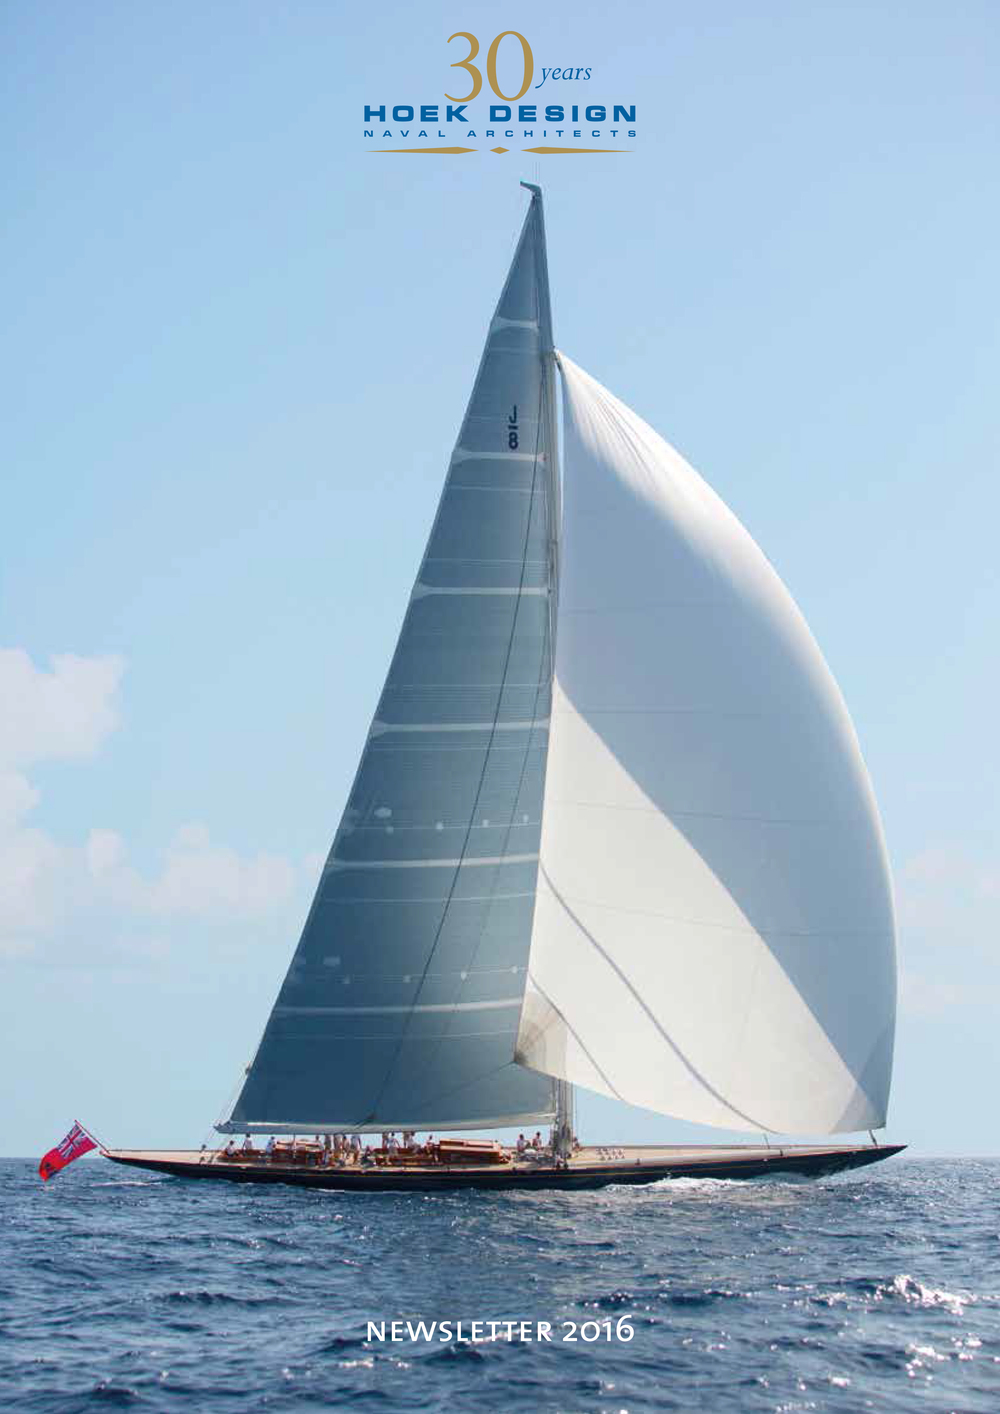 J8 Topaz, seen in 2015 in Lanzarote. PHOTO © Emily Harris Photography